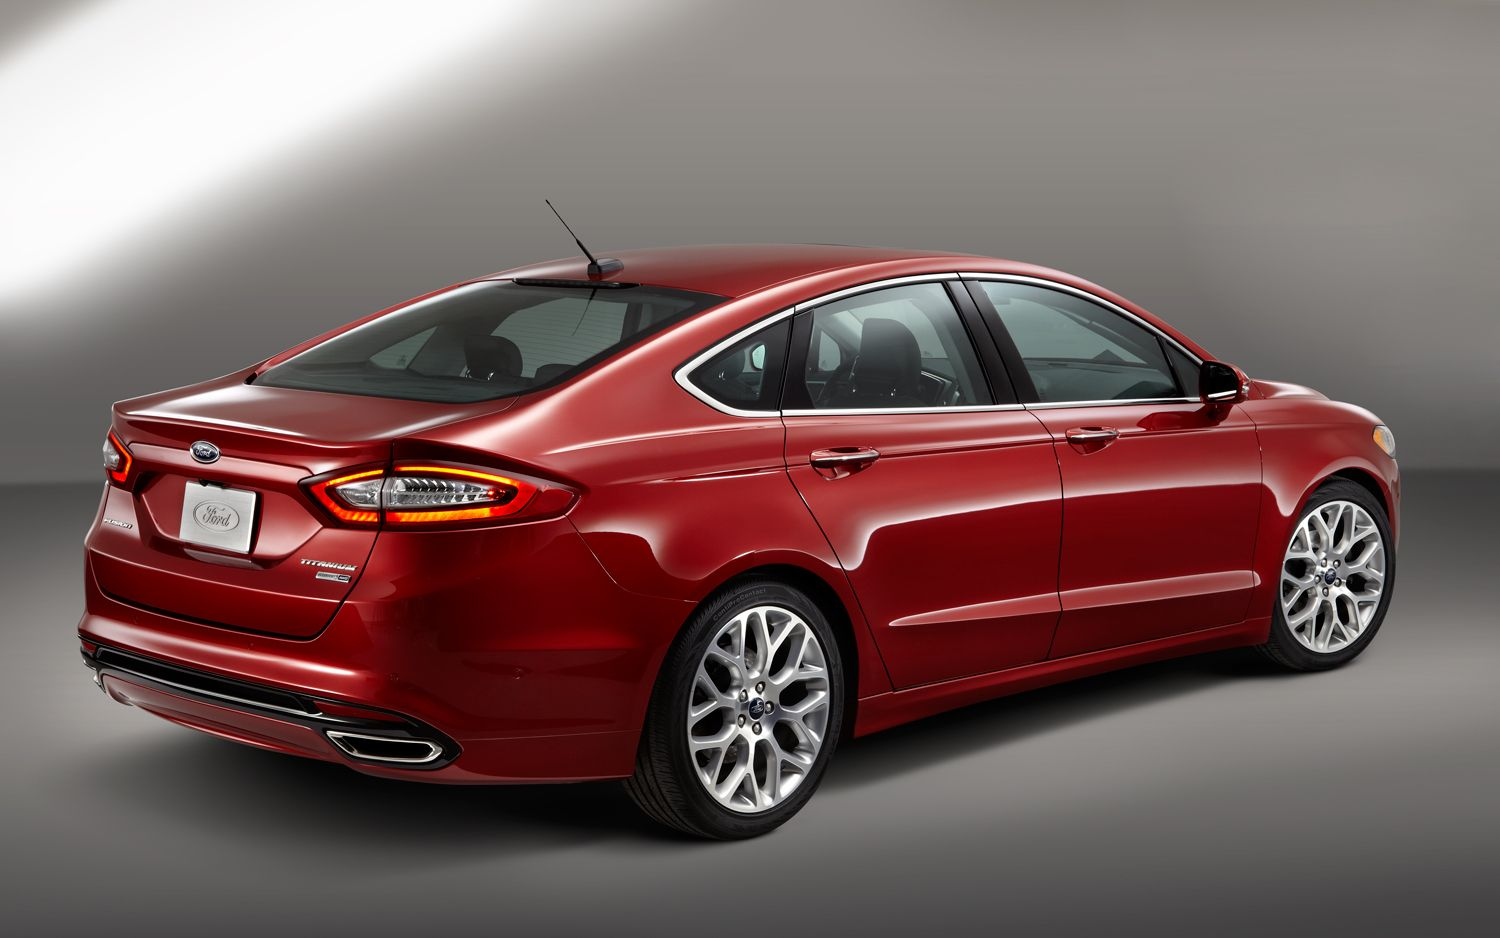 2013 ford fusion interior ford fusion pinterest ford fusion 2013 ford fusion and ford